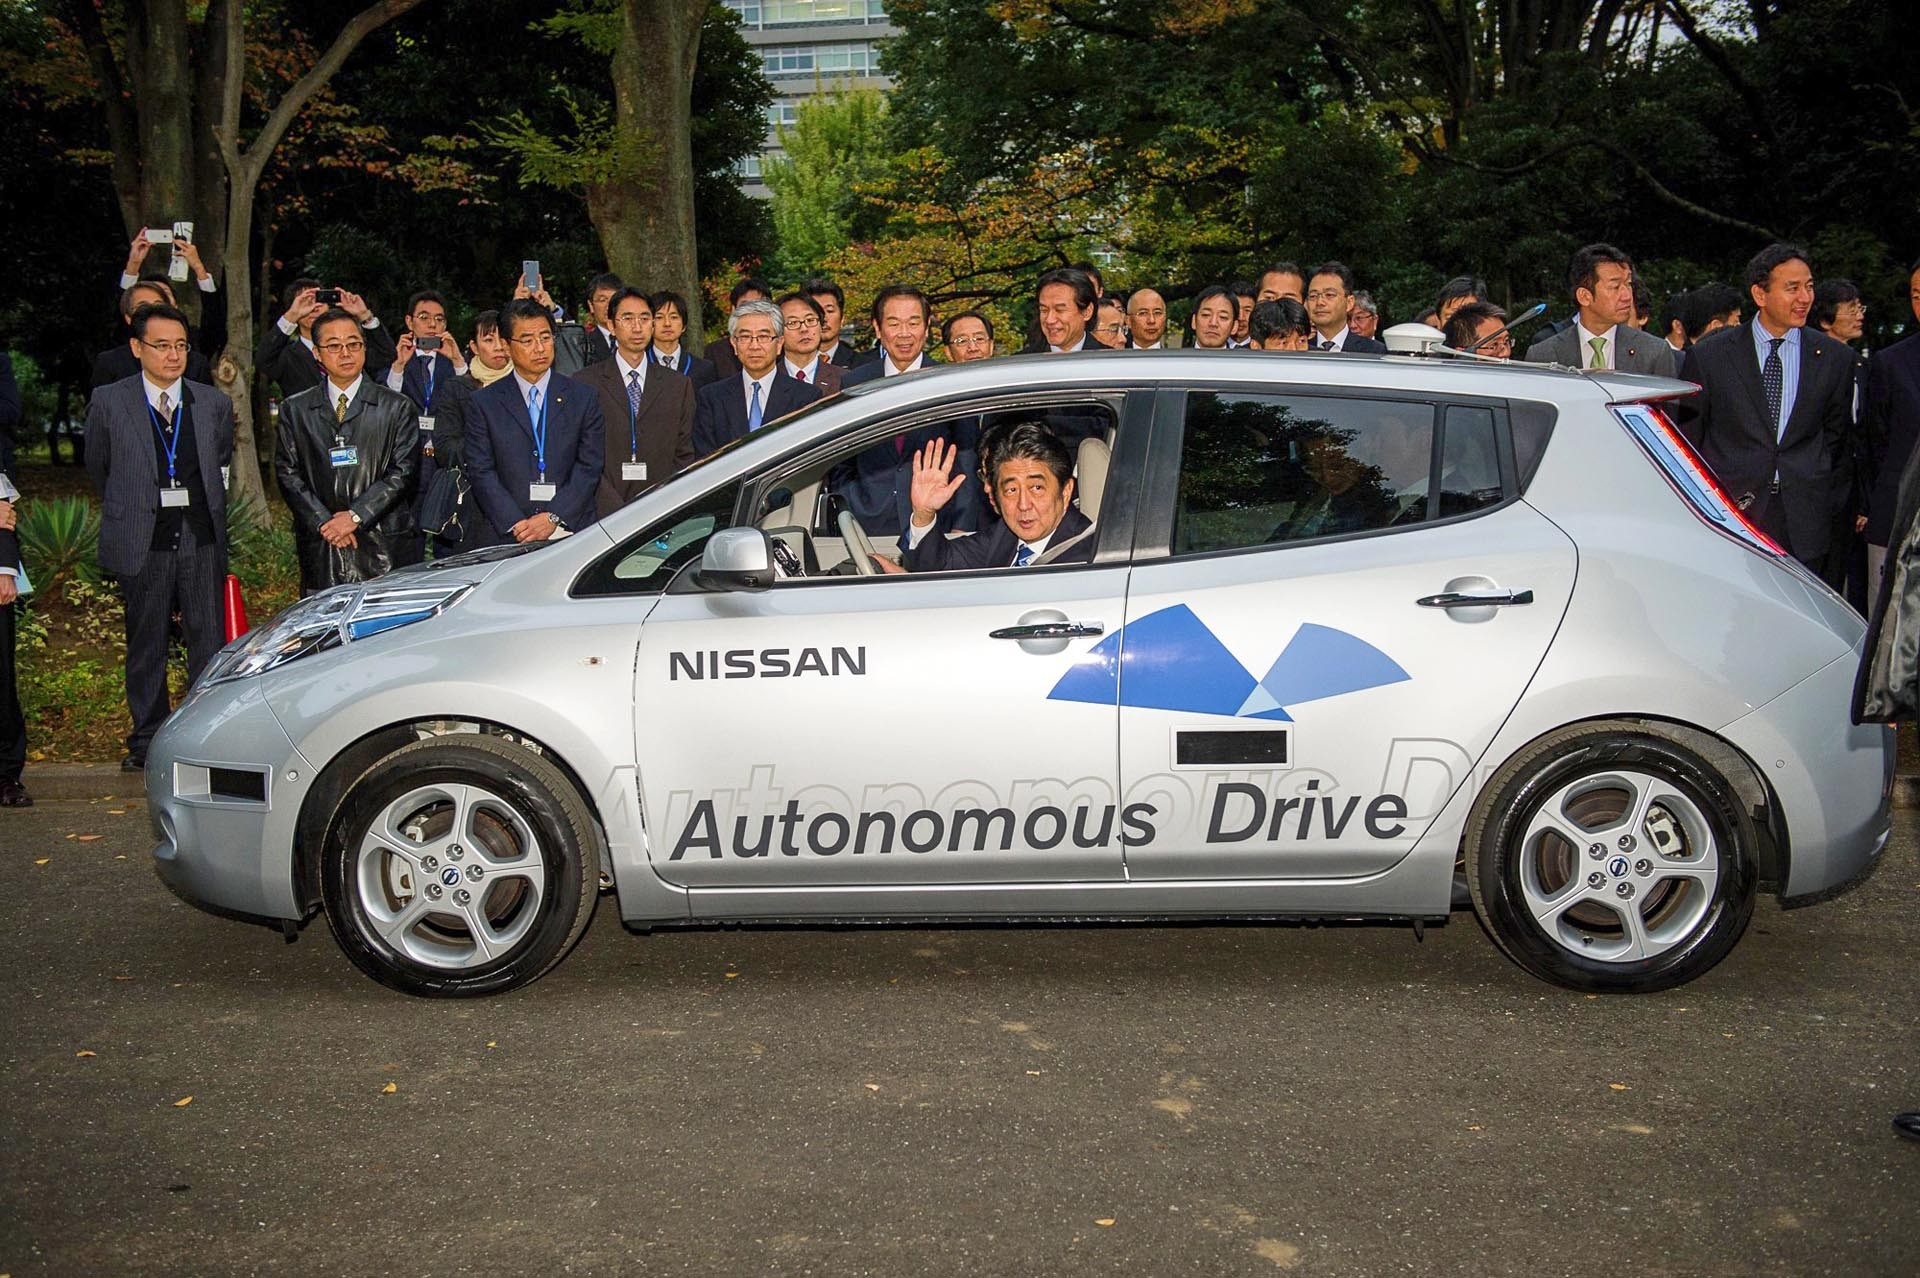 Nissan Leaf Engine Diagram Auto Tech Autonomous Cars Will Change Everything Page 3 Of 5 Of Nissan Leaf Engine Diagram